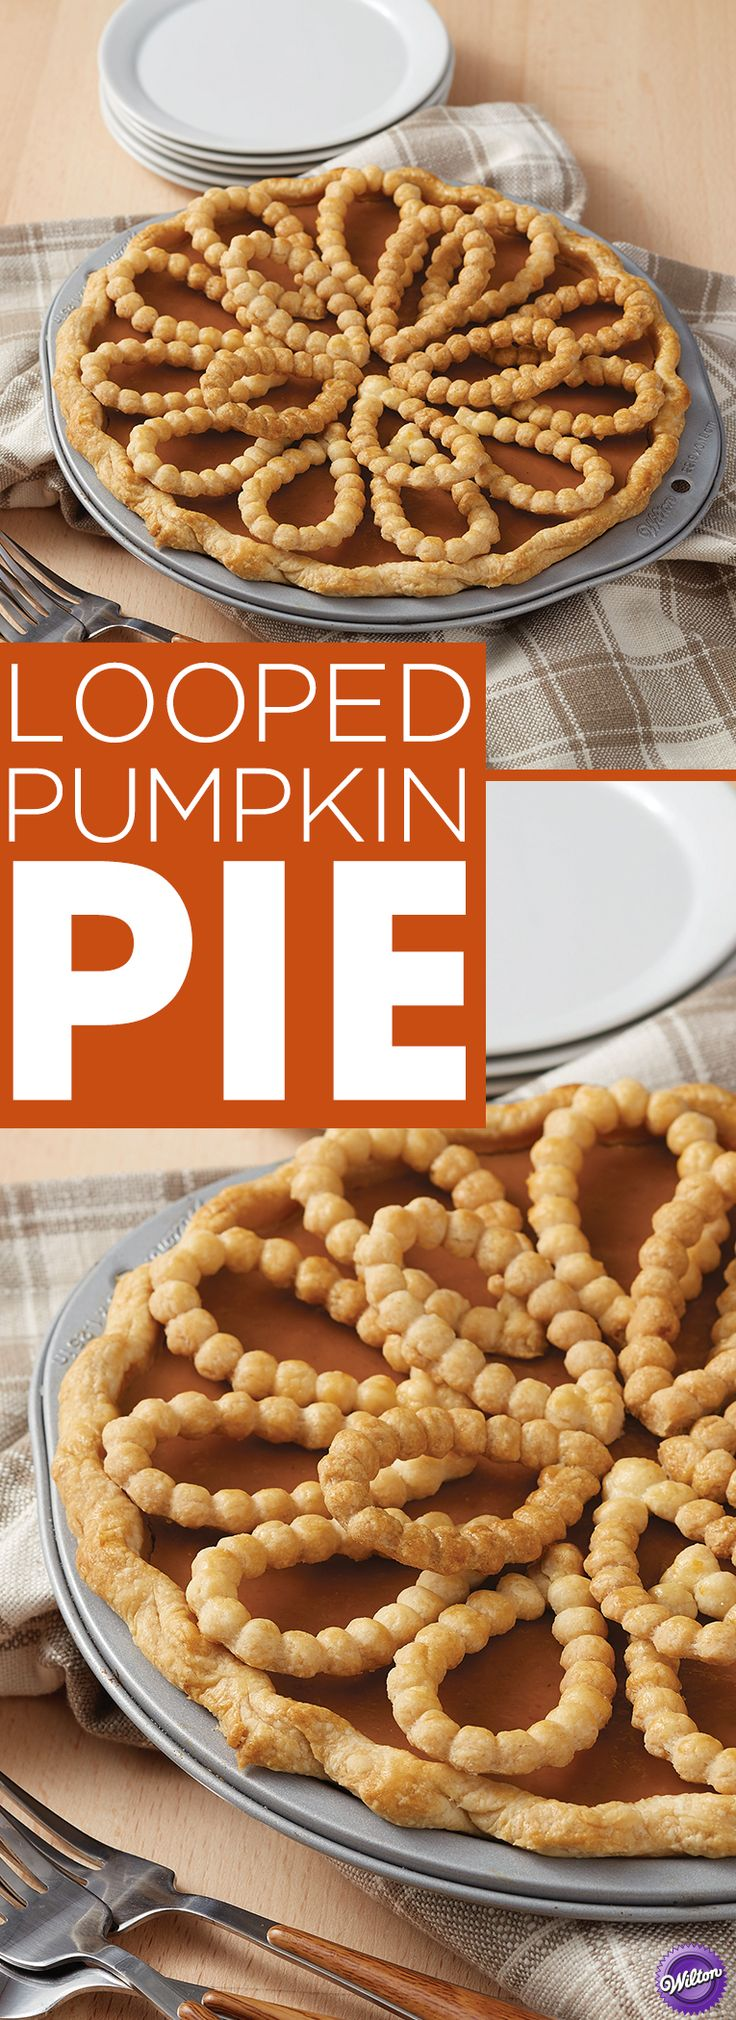 Looped Pumpkin Pie Recipe - There's nothing like baking a delicious pumpkin pie to welcome the fall season. Make this pumpkin pie recipe to serve at your autumn parties and gatherings. Use the Wilton Decorative Pie Crust Impression Mat to easily create fancy braid crust to decorate your pie.